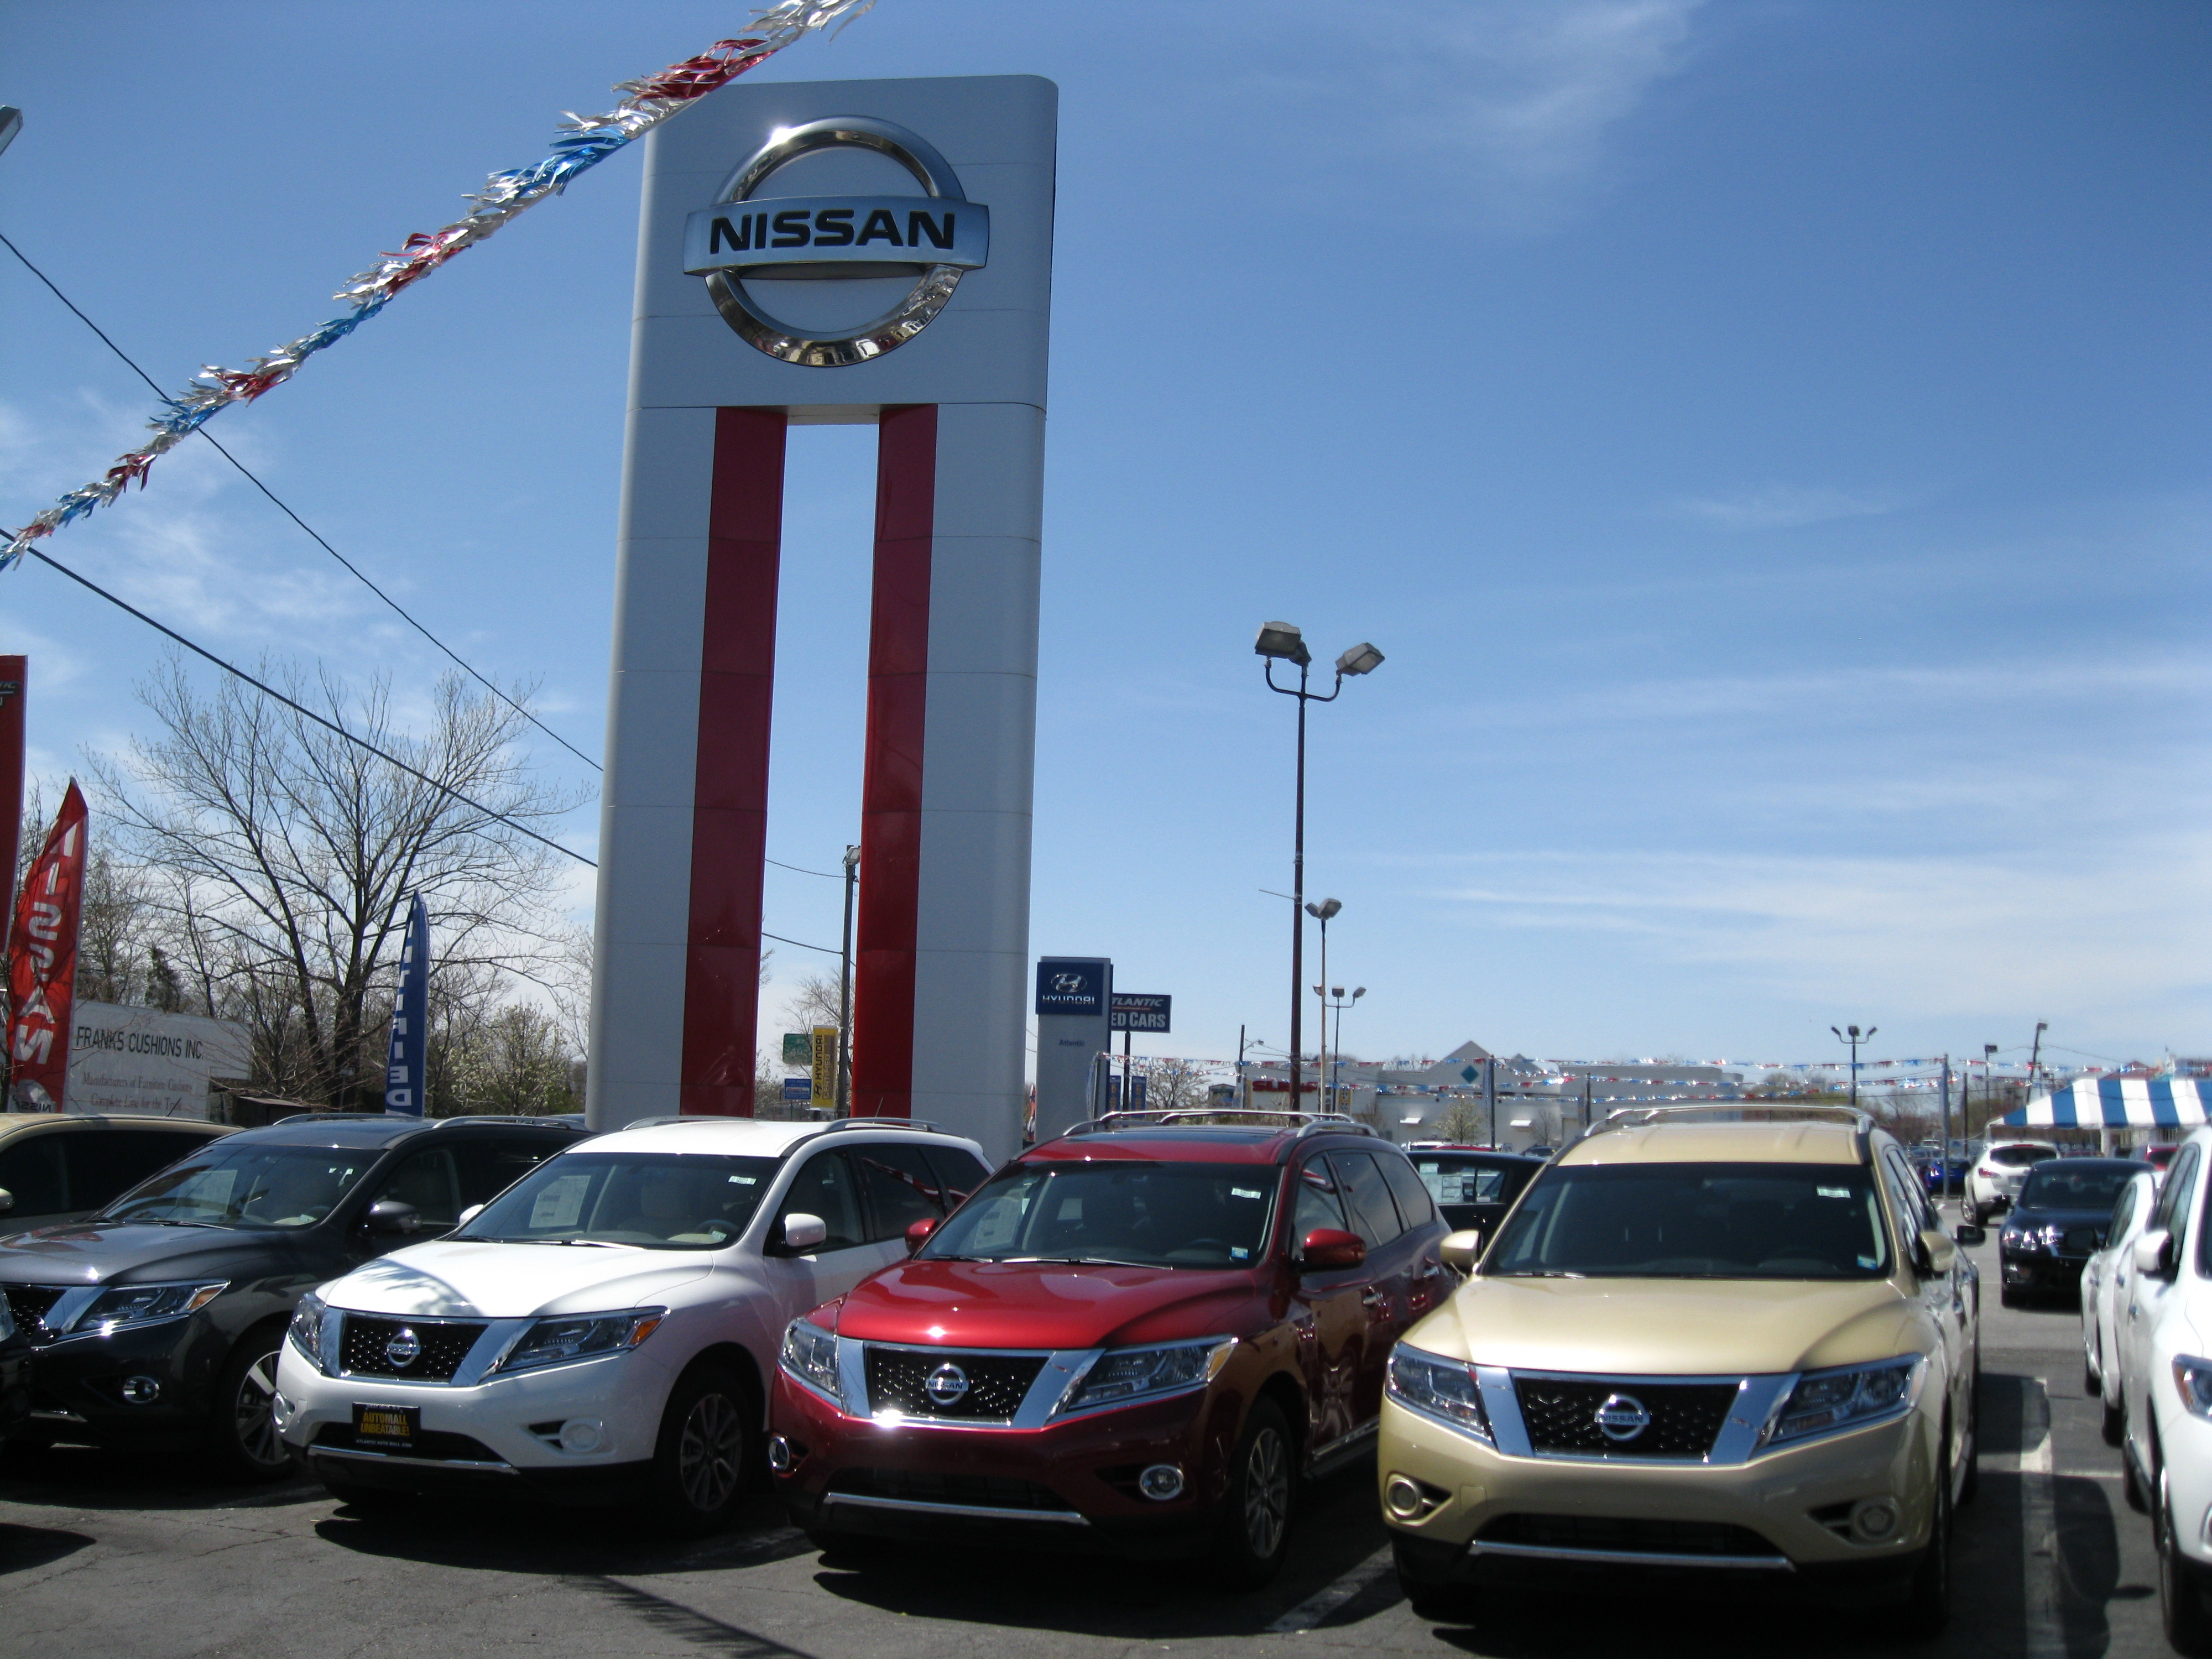 Exceptional Atlantic Nissan 1521 Sunrise Highway Bay Shore, NY Car Service   MapQuest